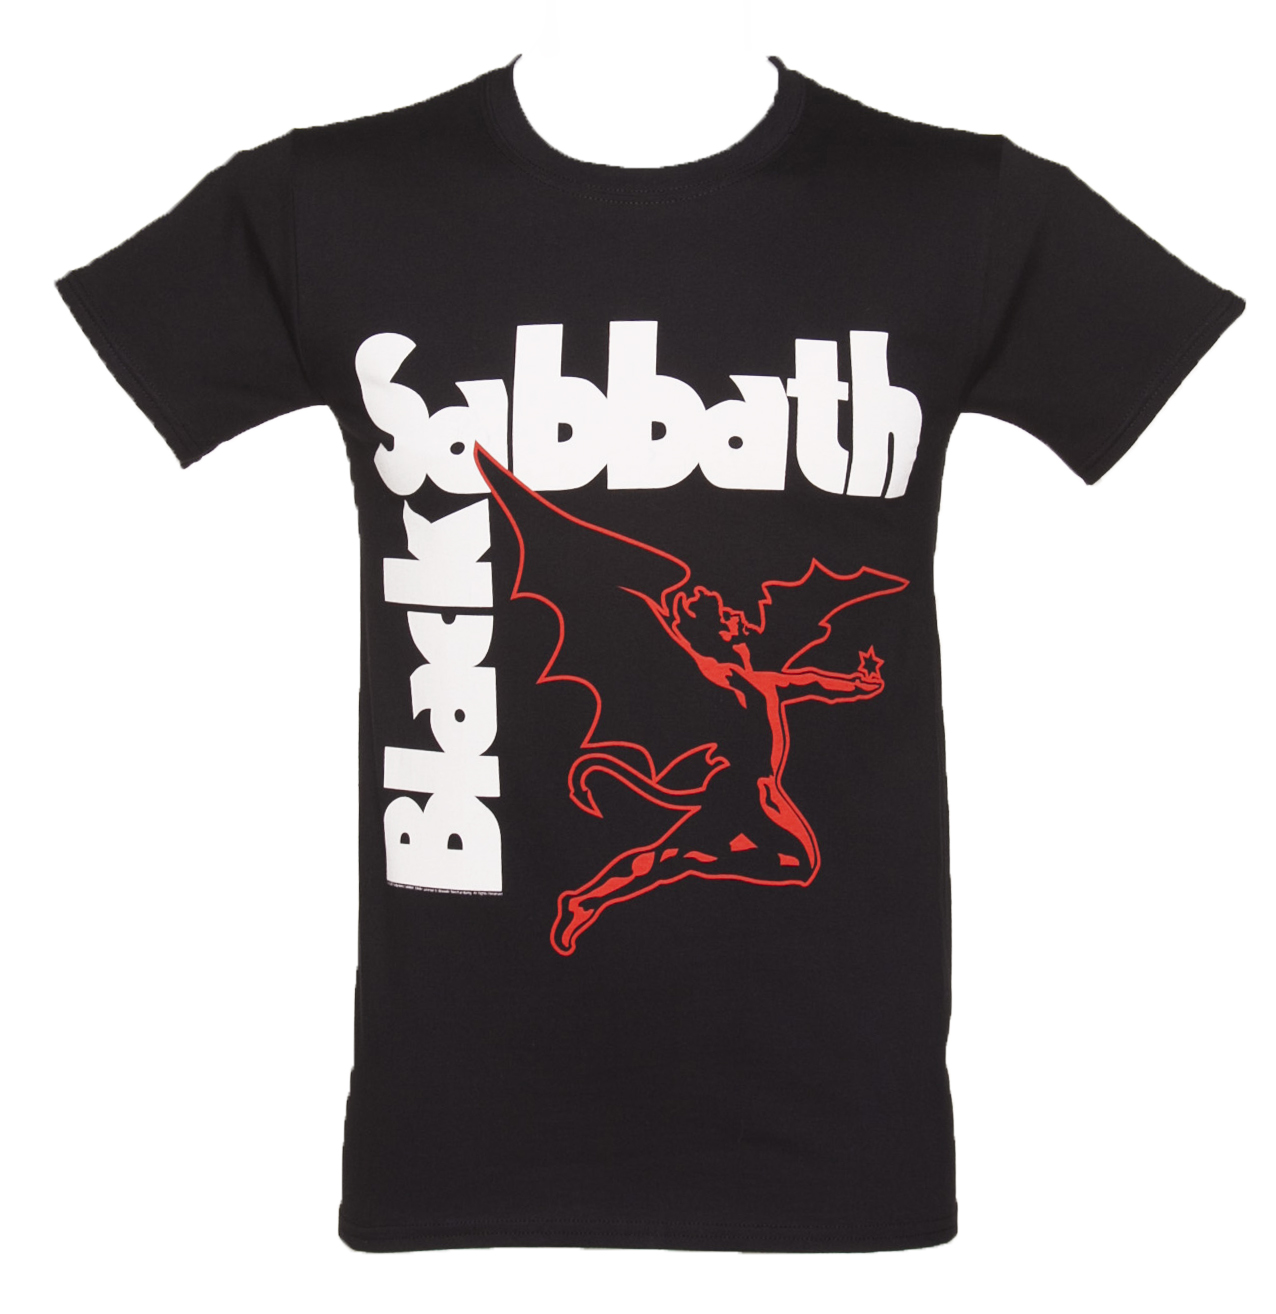 Mens Black Sabbath Creature T-Shirt product image